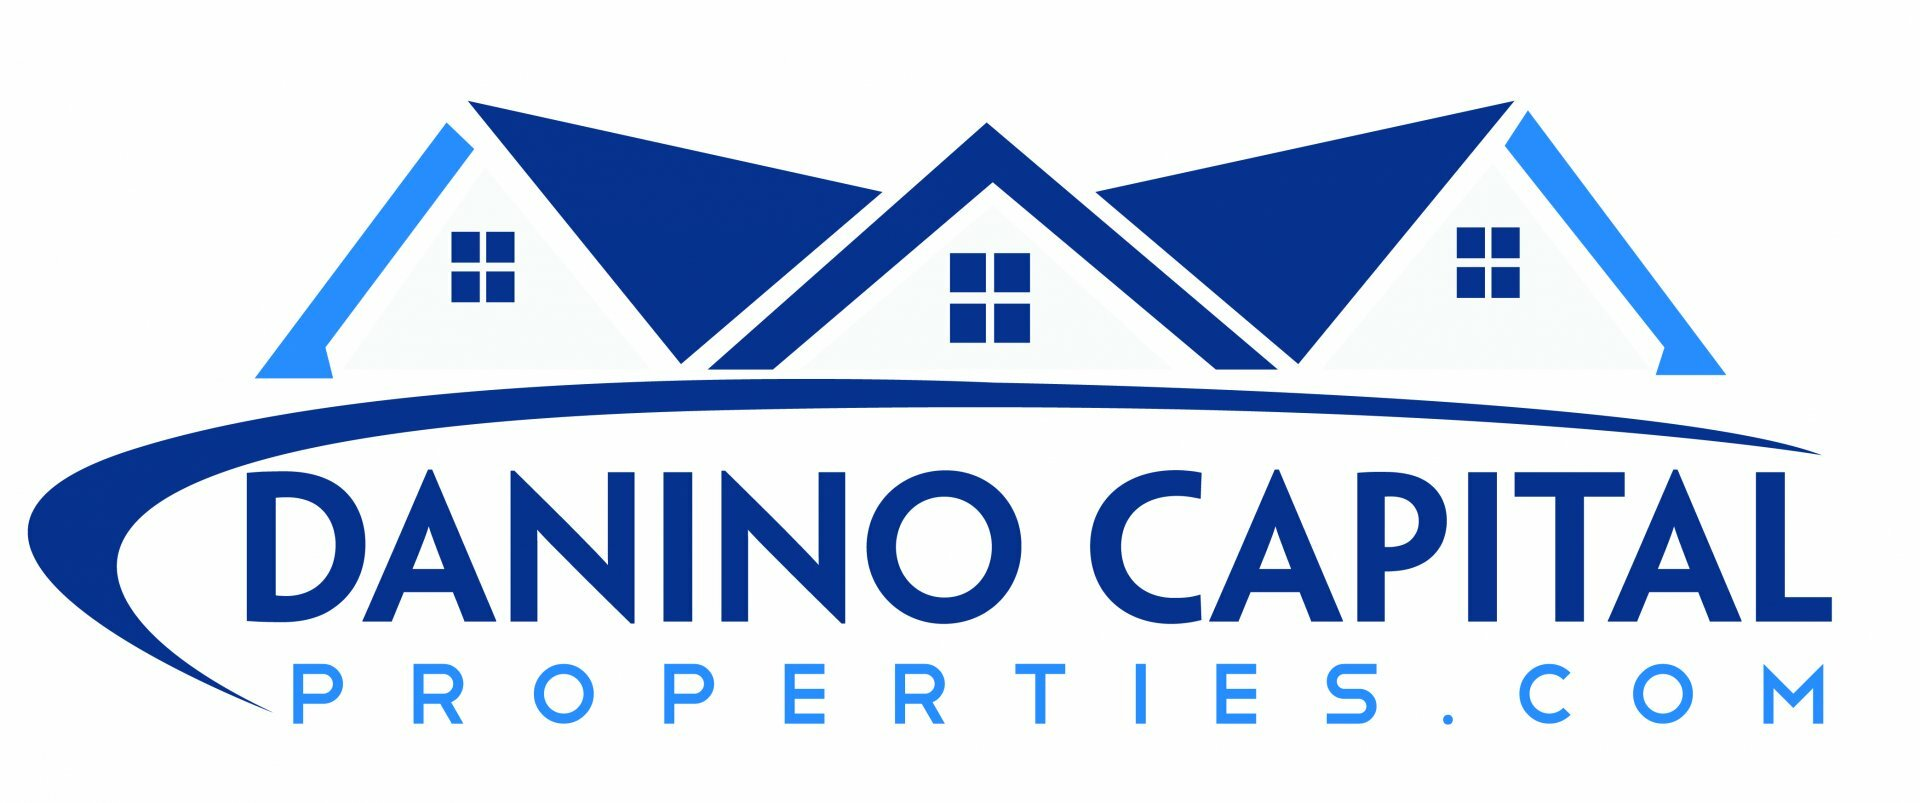 Danino Capital Properties logo